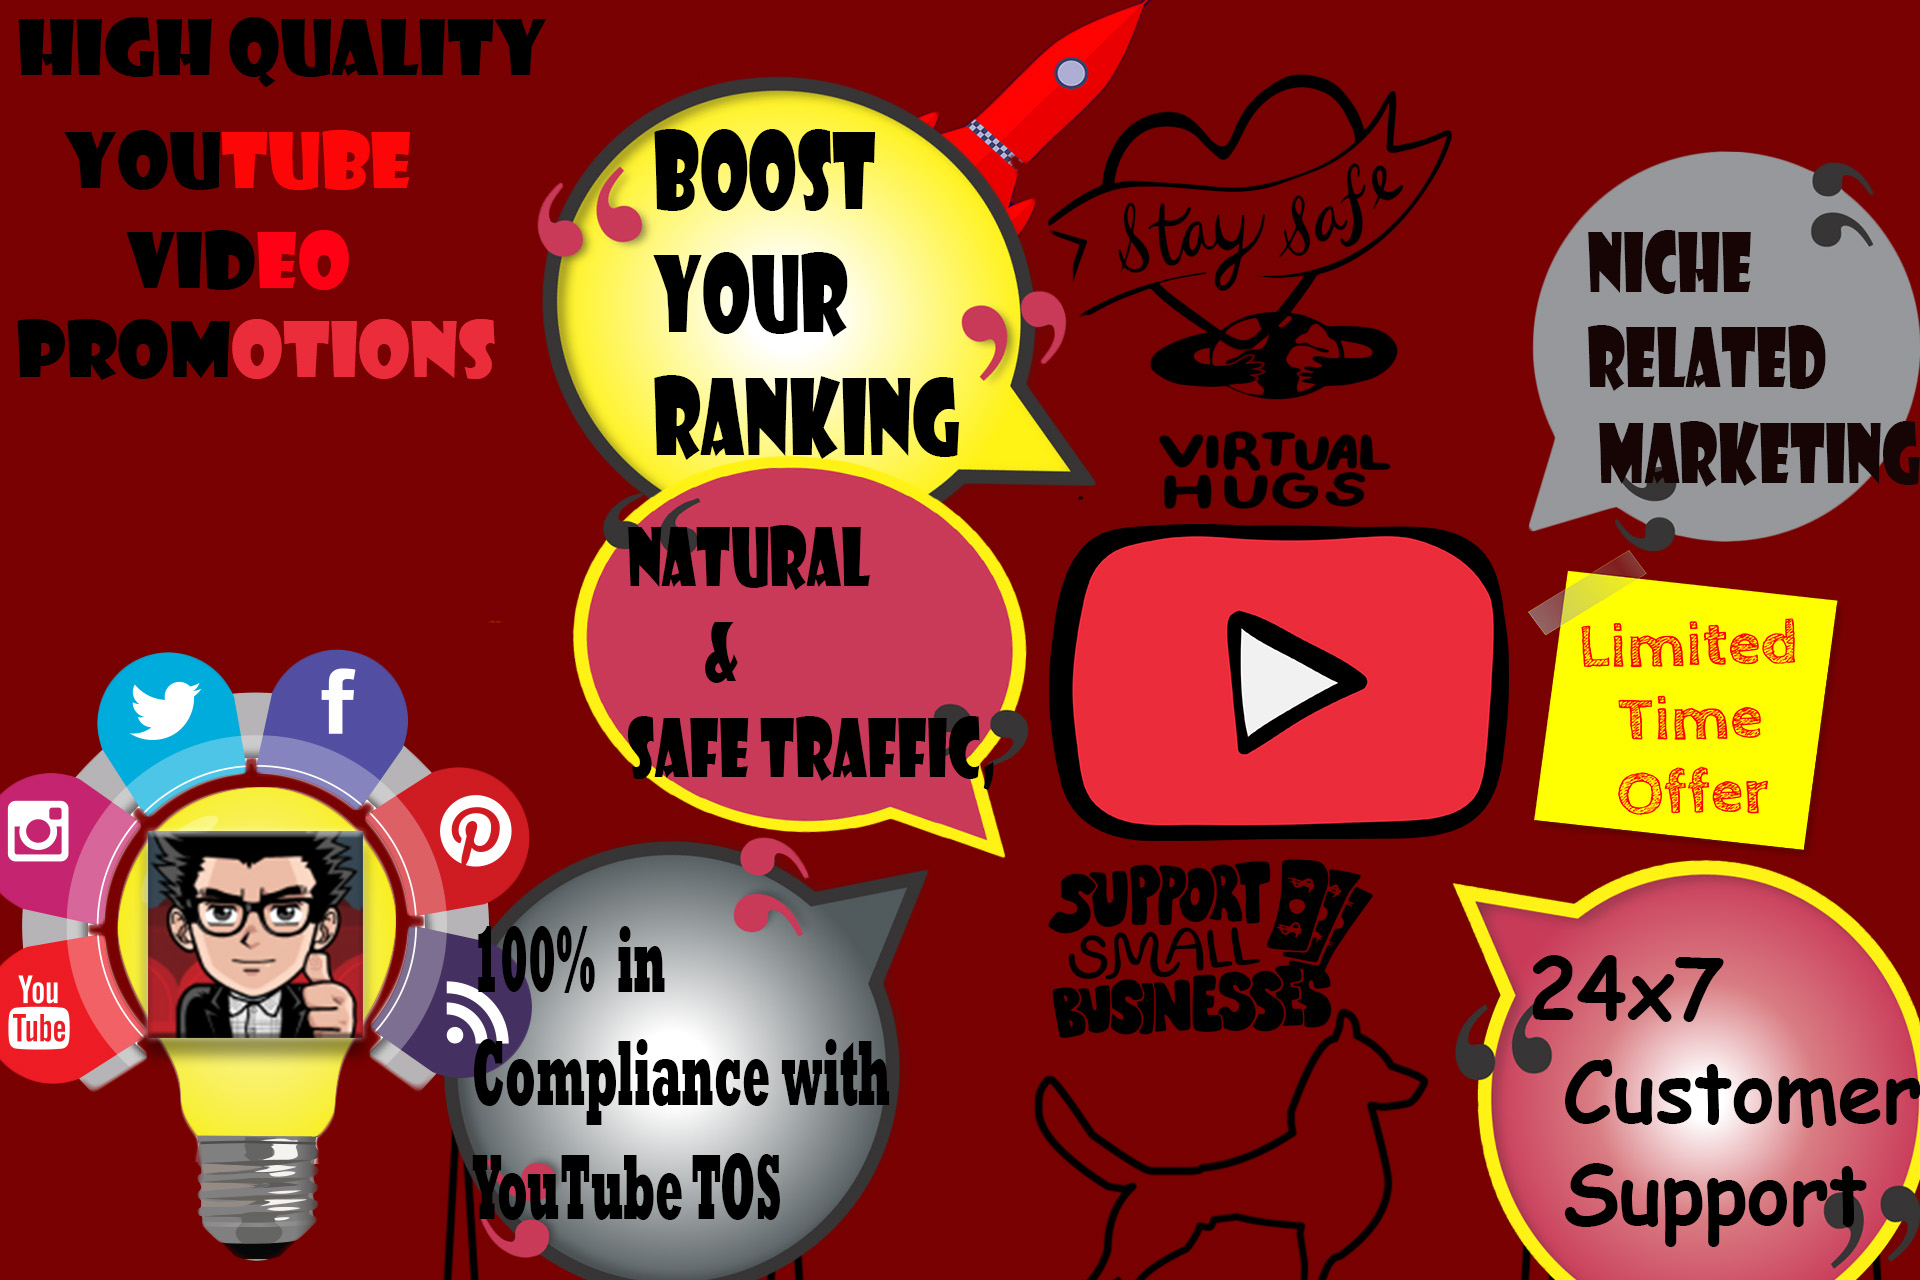 Real YouTube Video Promotions. 1k Youtube Marketing Service 6-24 hr delivery